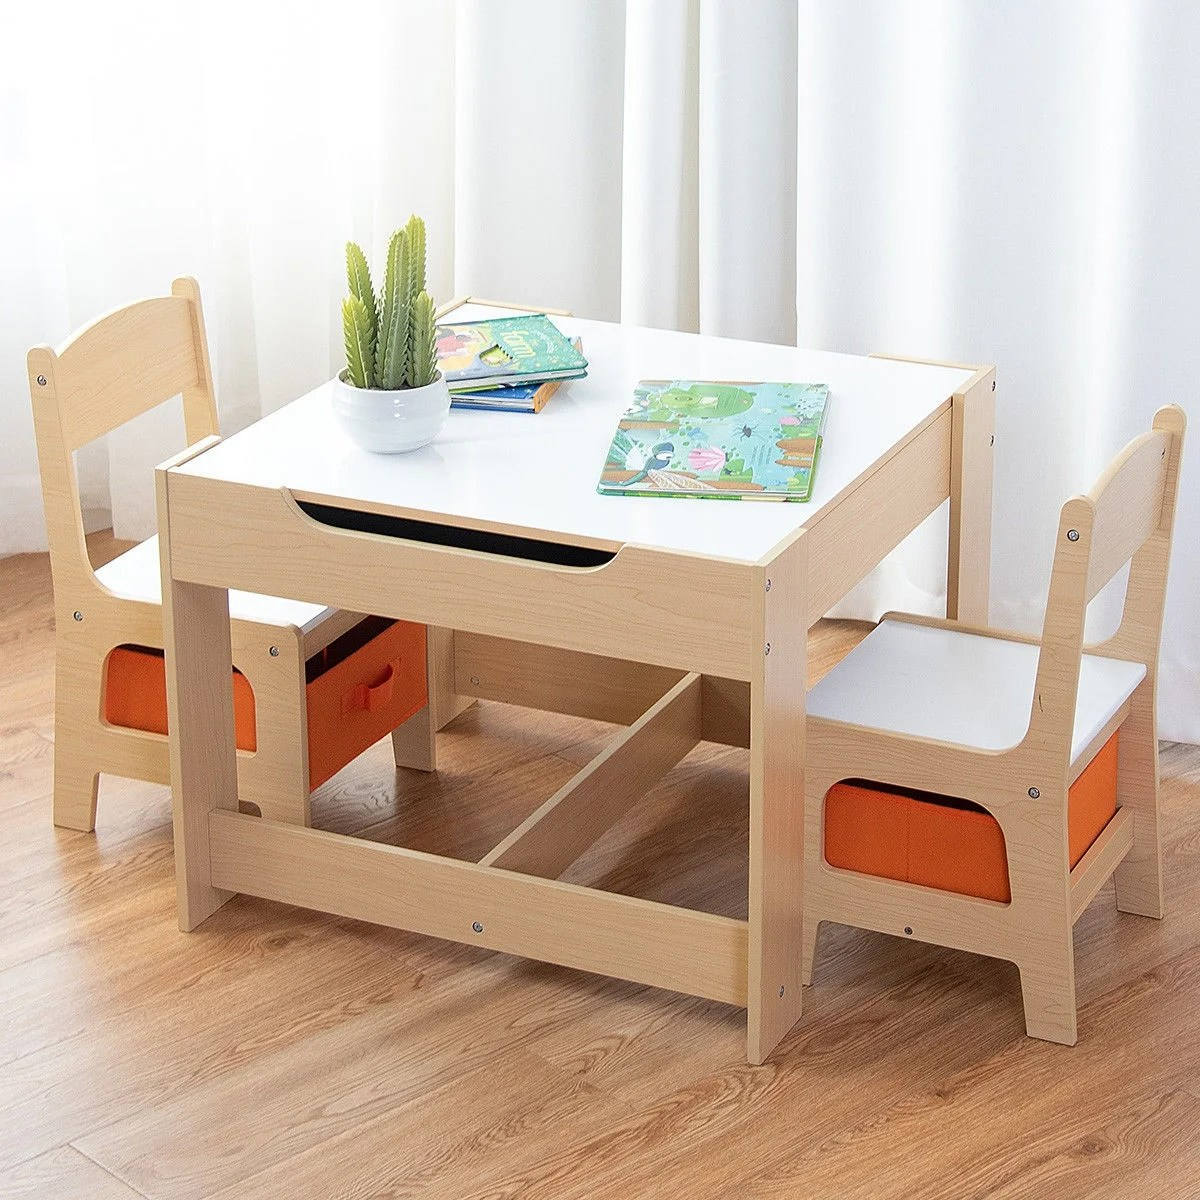 Table With Chairs Gymax Children Kids Table Chairs Set With Storage Boxes Blackboard Whiteboard Drawing